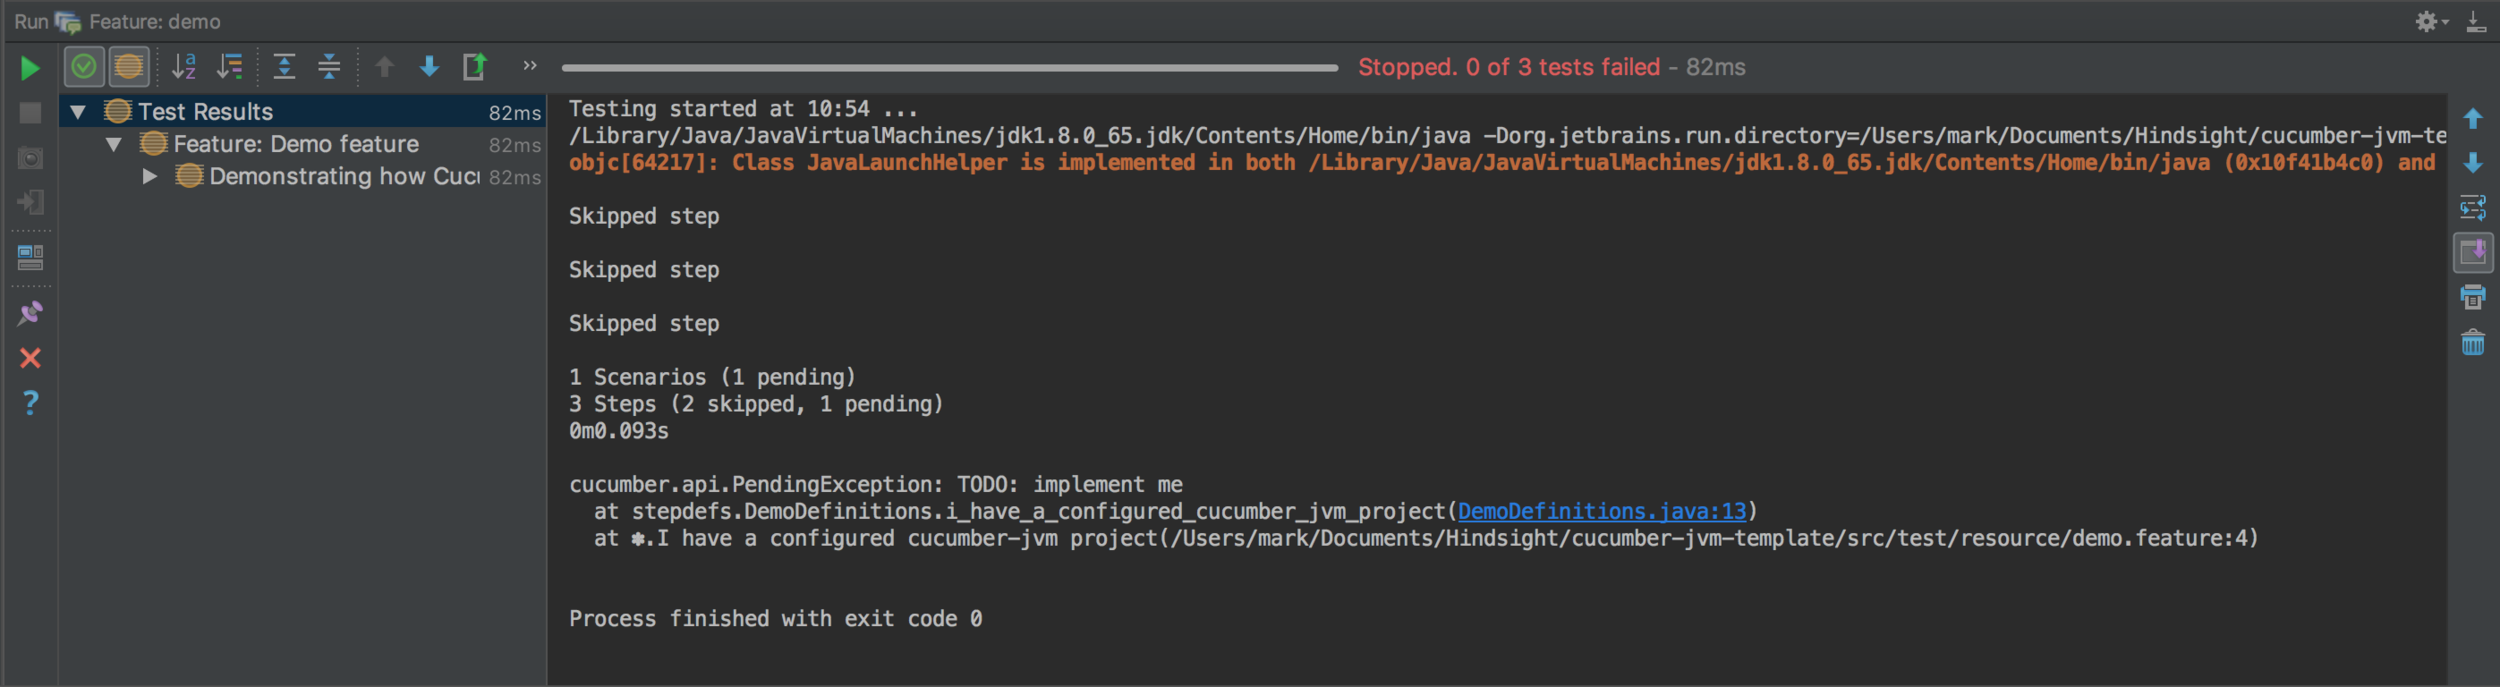 0 of 3 tests failed screenshots - cucumber testing java - cucumber java